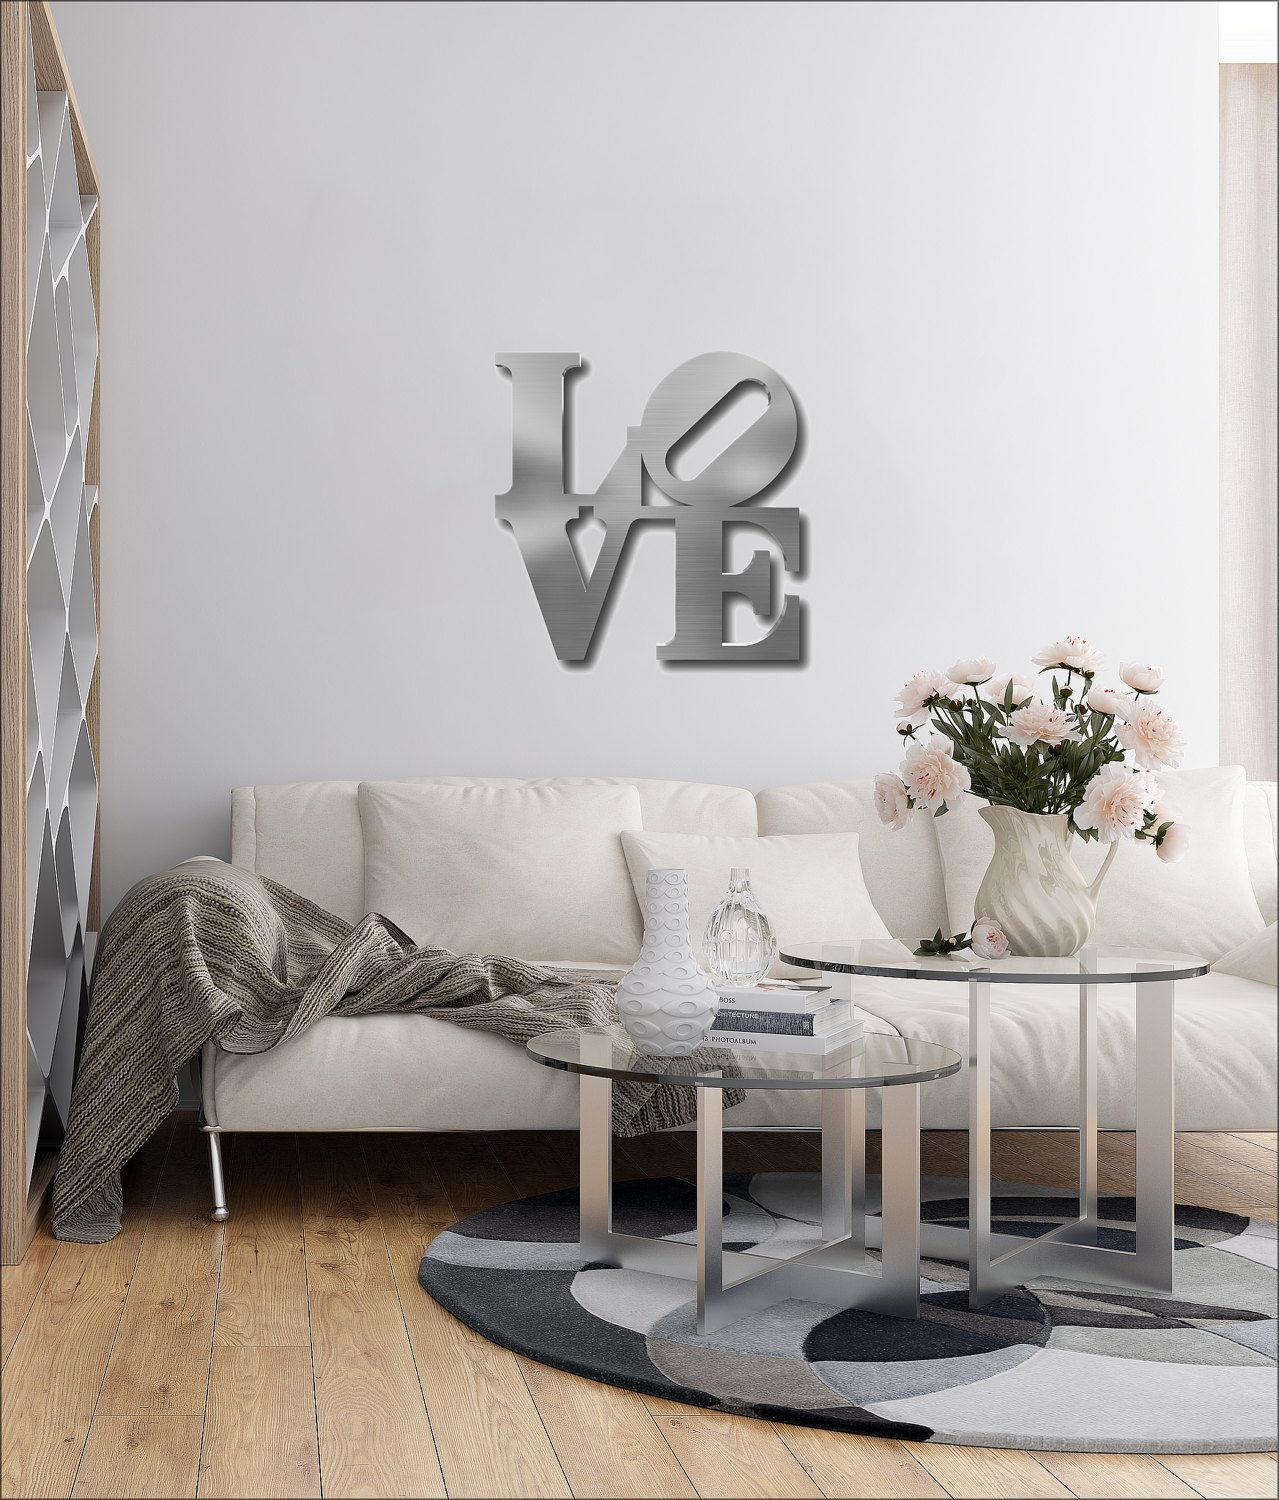 love metal wall art love wall decor word art metal wall art large metal wall art 3d wall sculpture silver wall decor